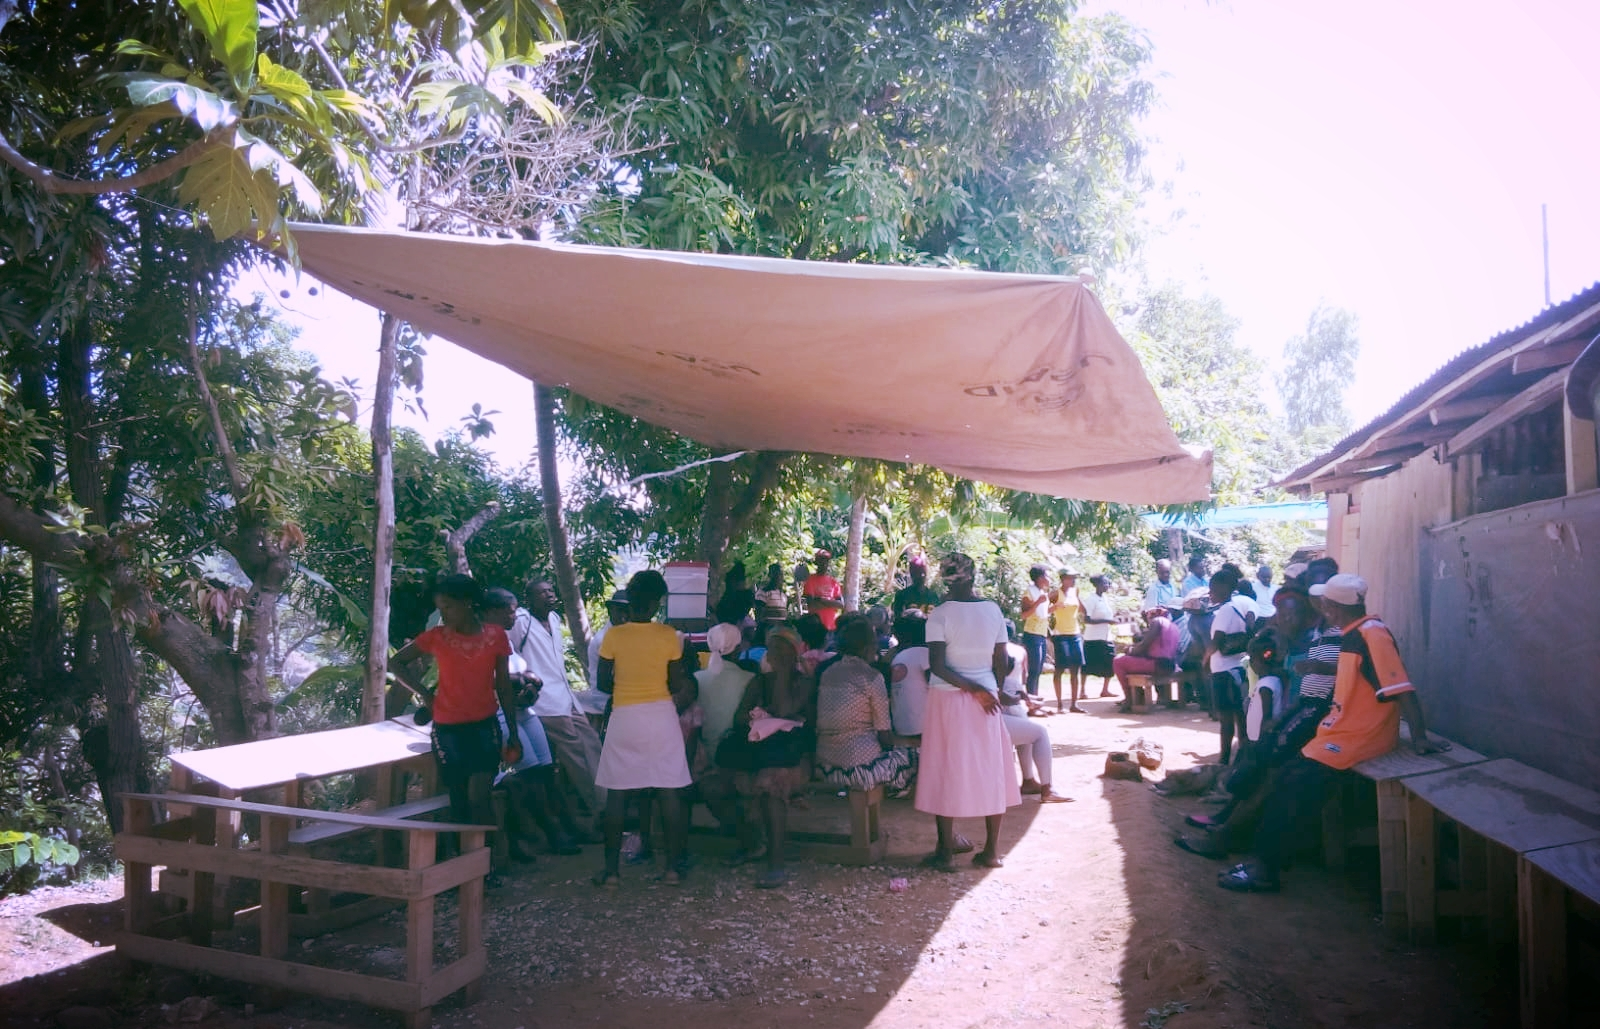 Community members wait for a consultation at a mobile clinic in the mountains of Leogane. For many, attending this mobile clinic is their sole access to healthcare.